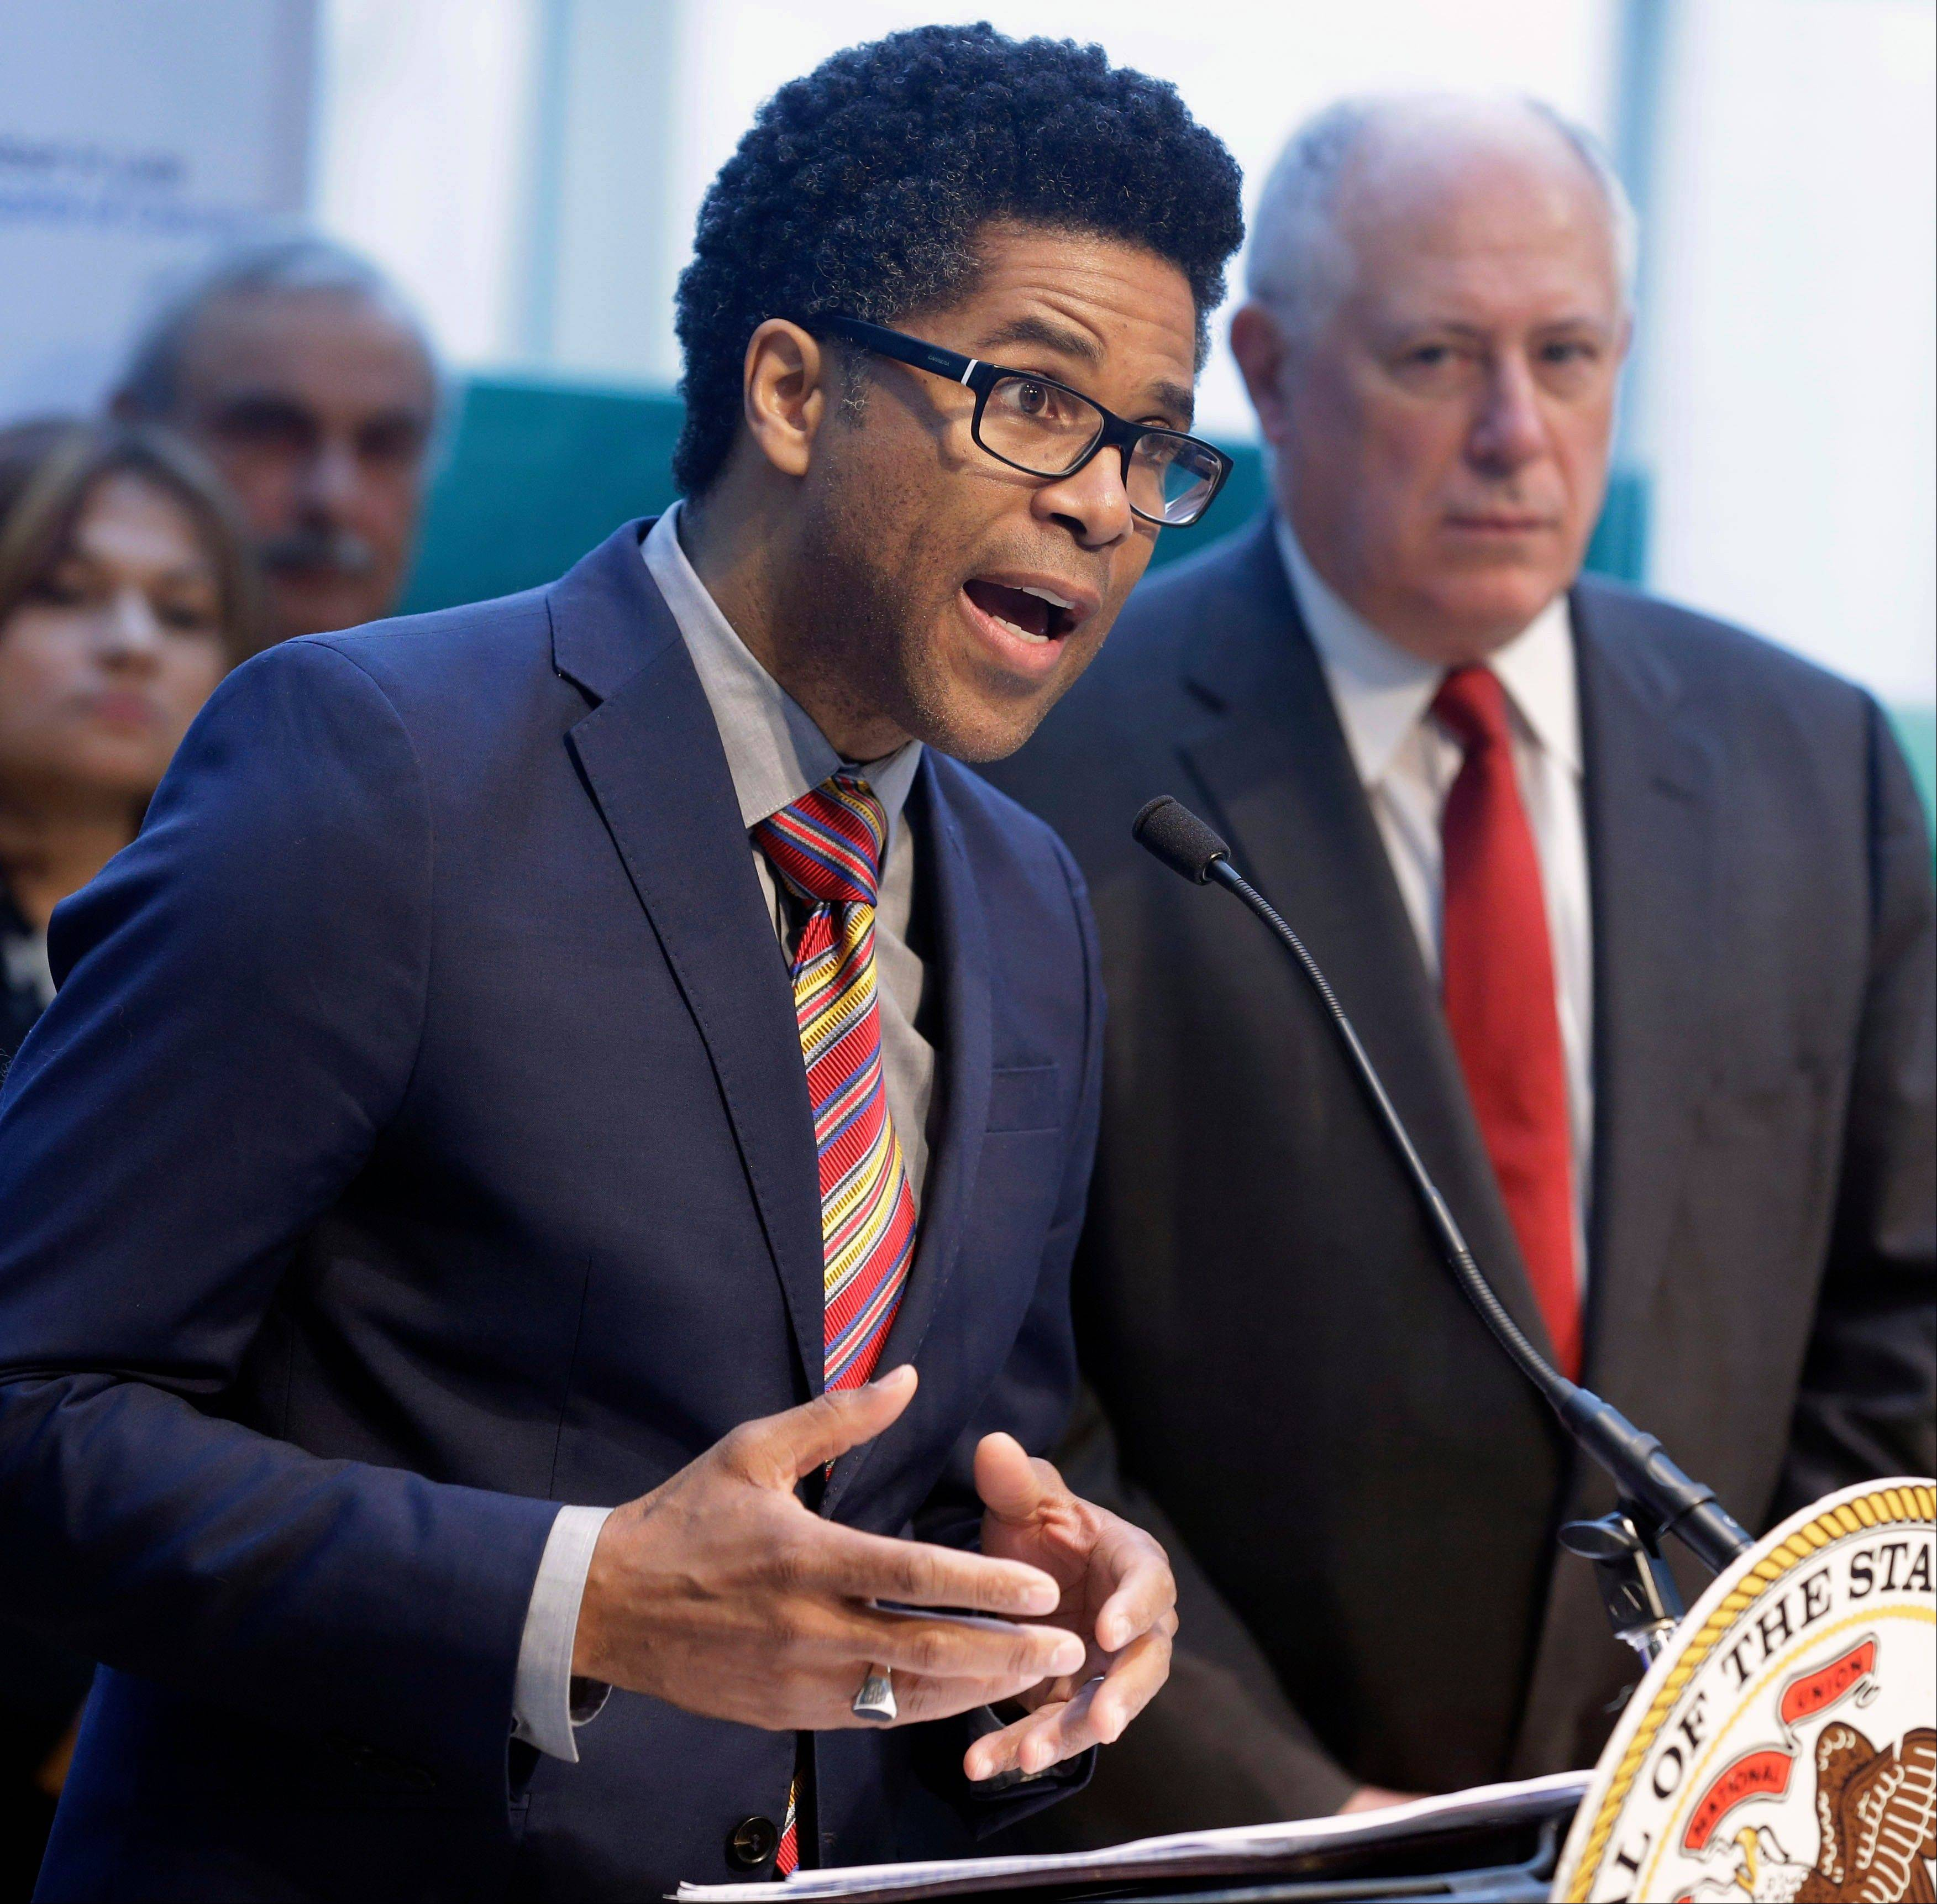 Illinois Department of Public Health Director LaMar Hasbrouck, left, accompanied by Gov. Pat Quinn, speaks at a news conference on youth violence Monday in Chicago.